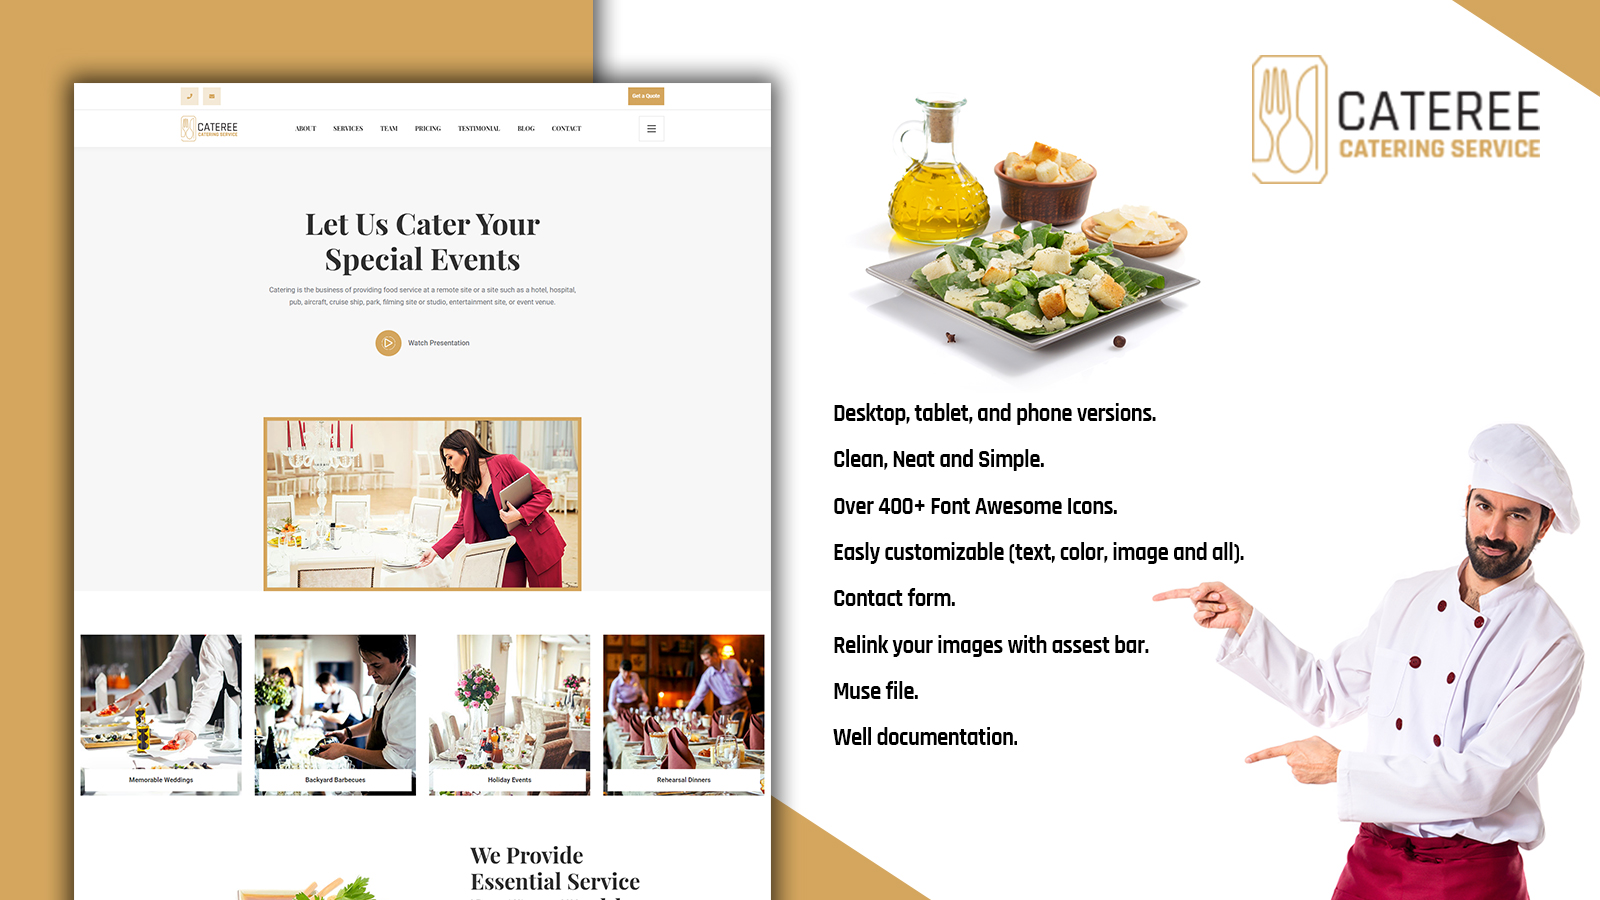 Cateree - Catering Services HTML5 Landing Page